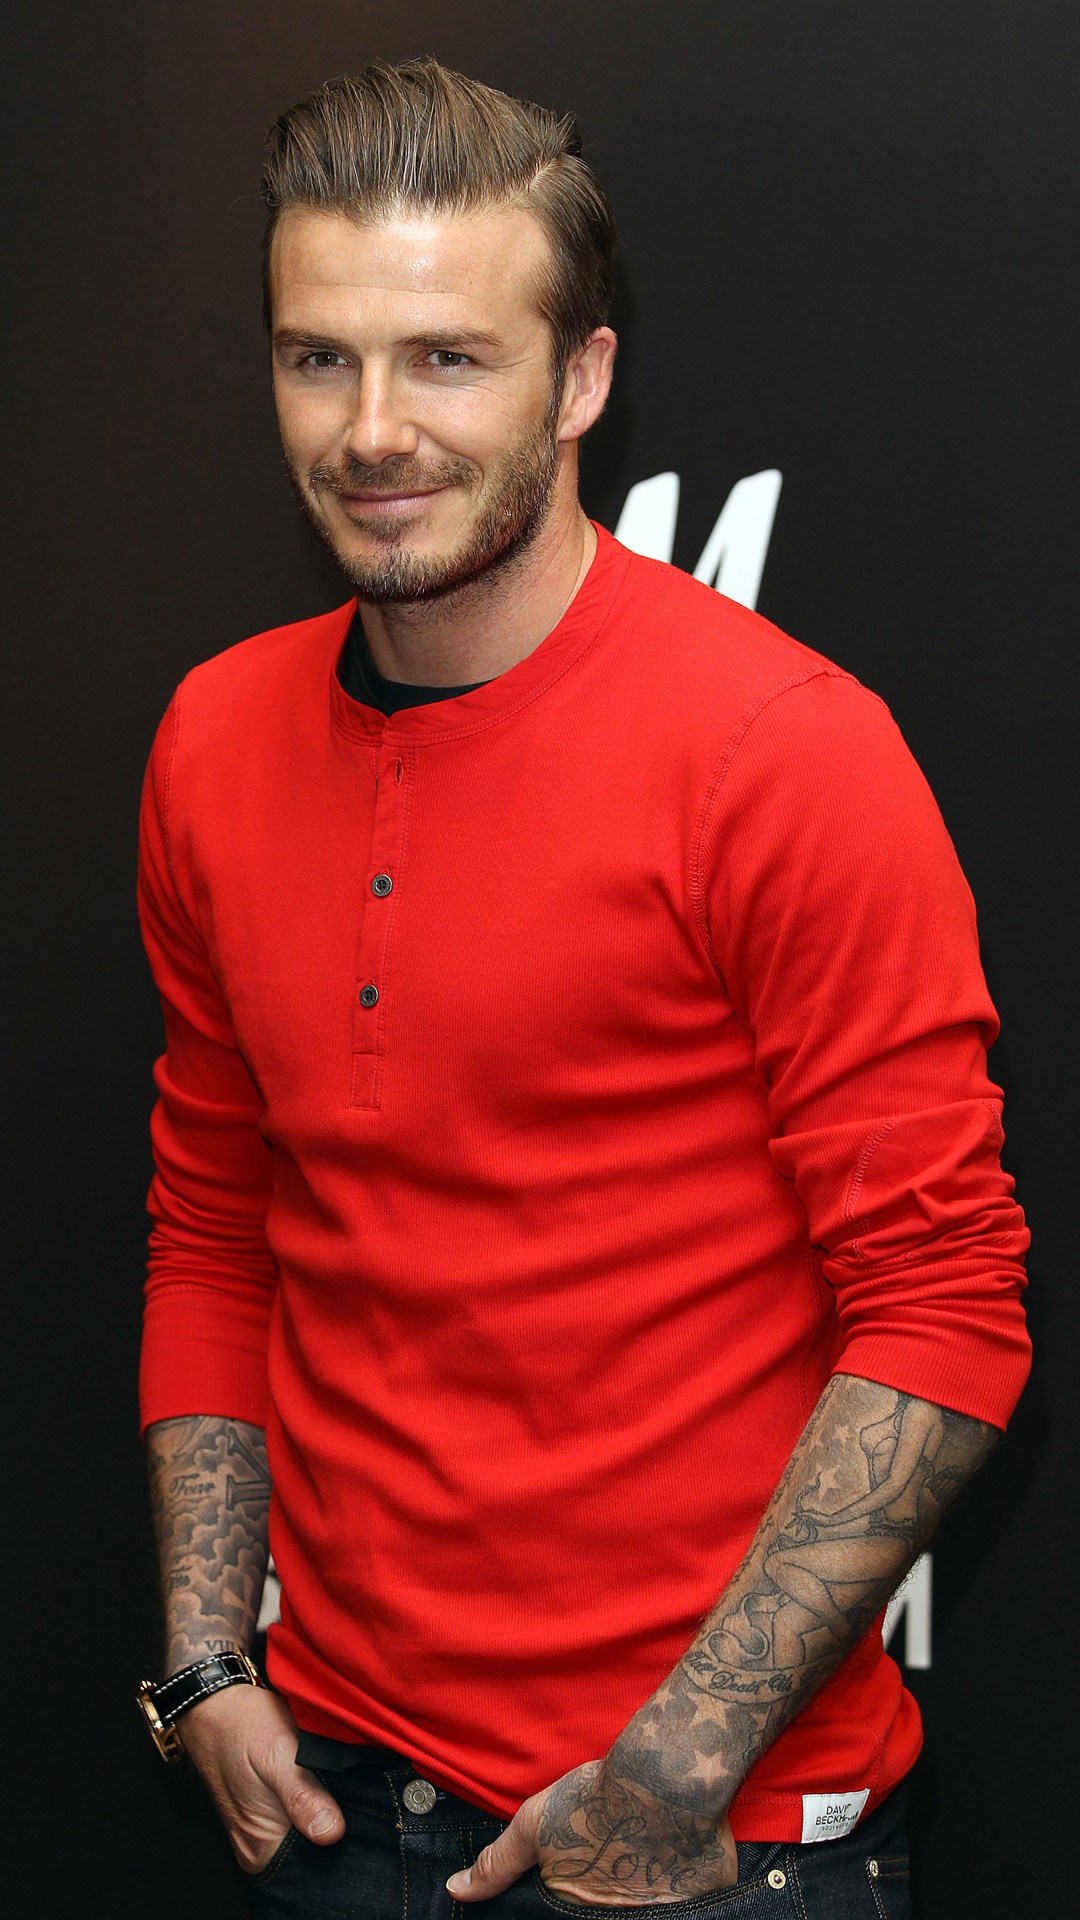 Htc One M8 Wallpaper Hd David Beckham Best Htc One Wallpapers Free And Easy To